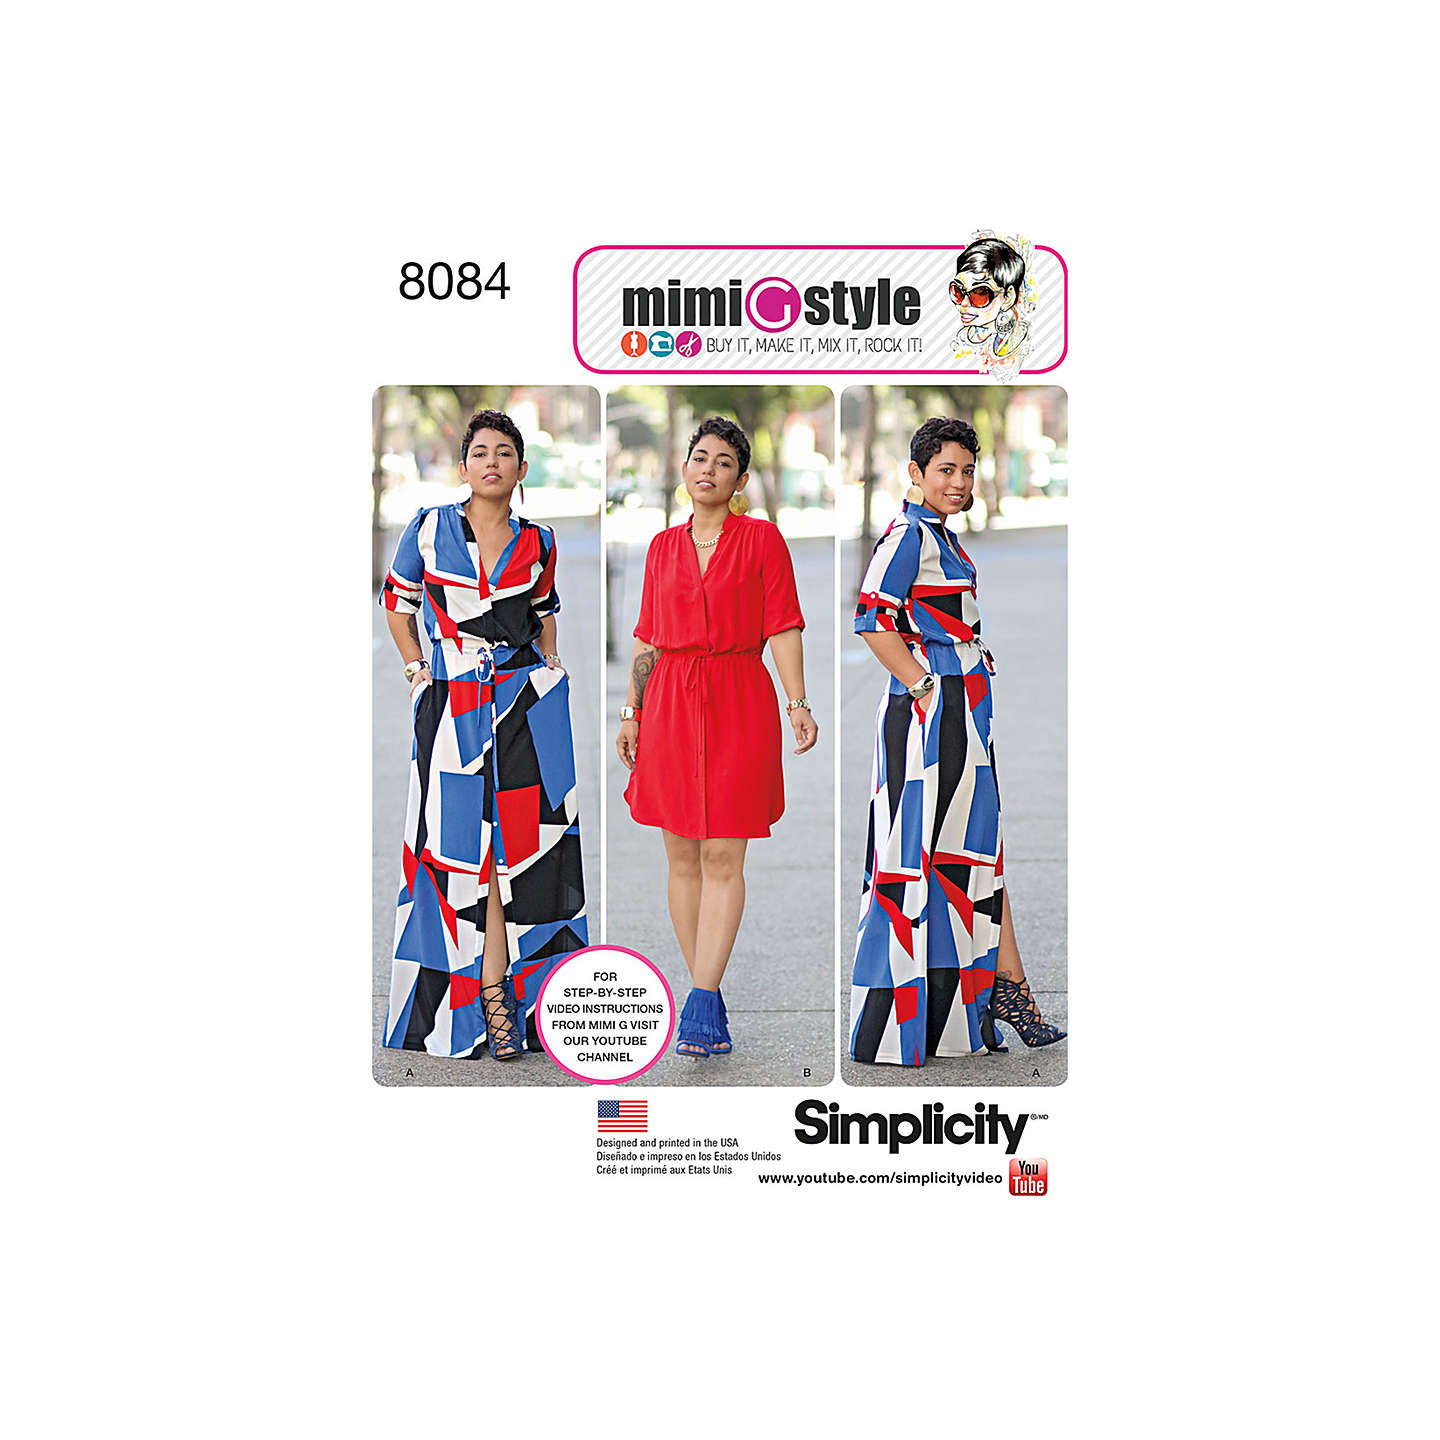 Simplicity Womens Plus Size Dresses Sewing Pattern 8084 At John Lewis